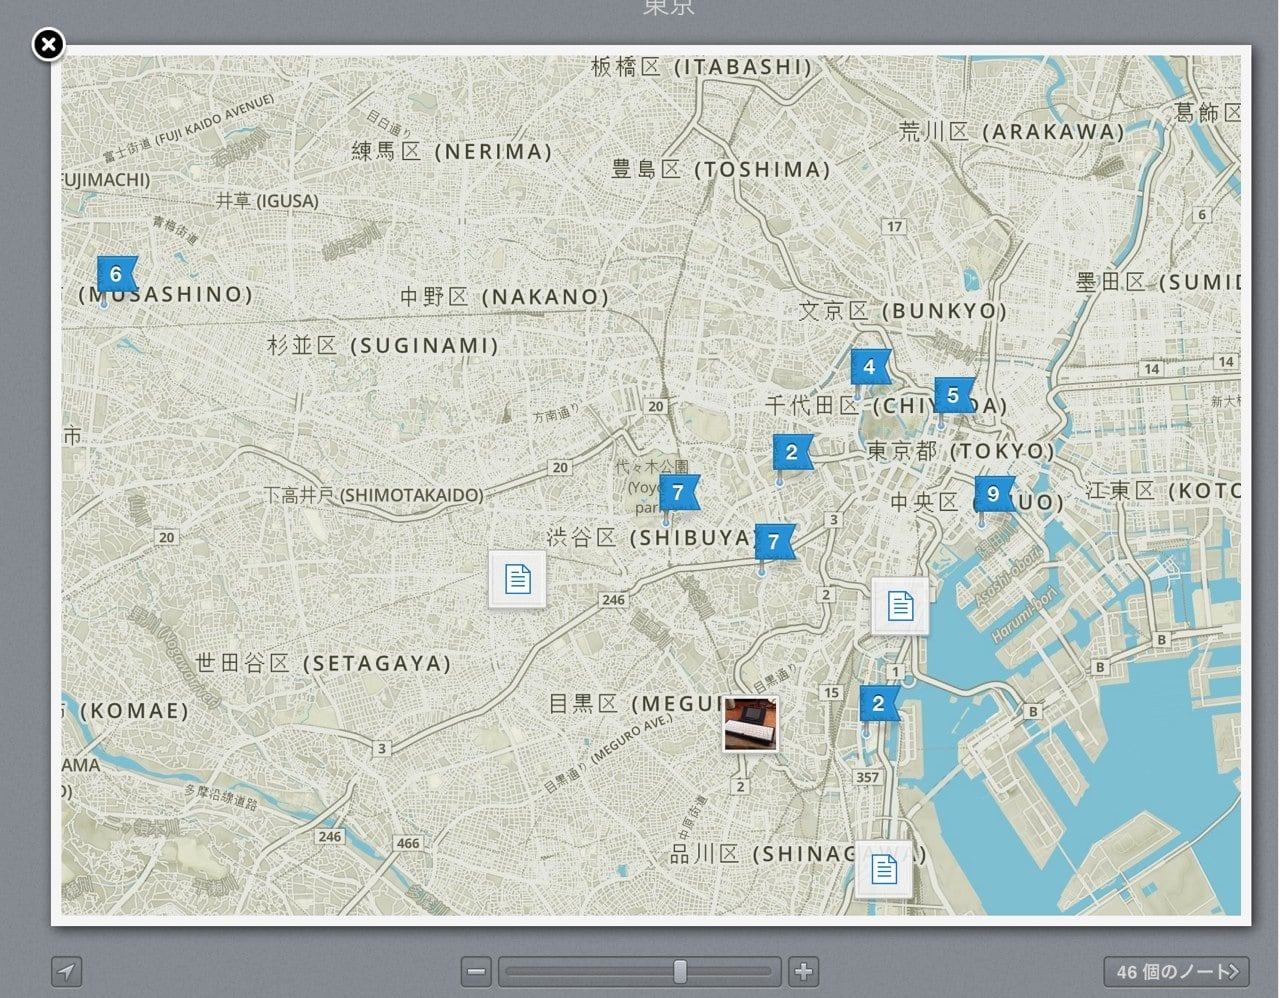 Evernote5 mapview2